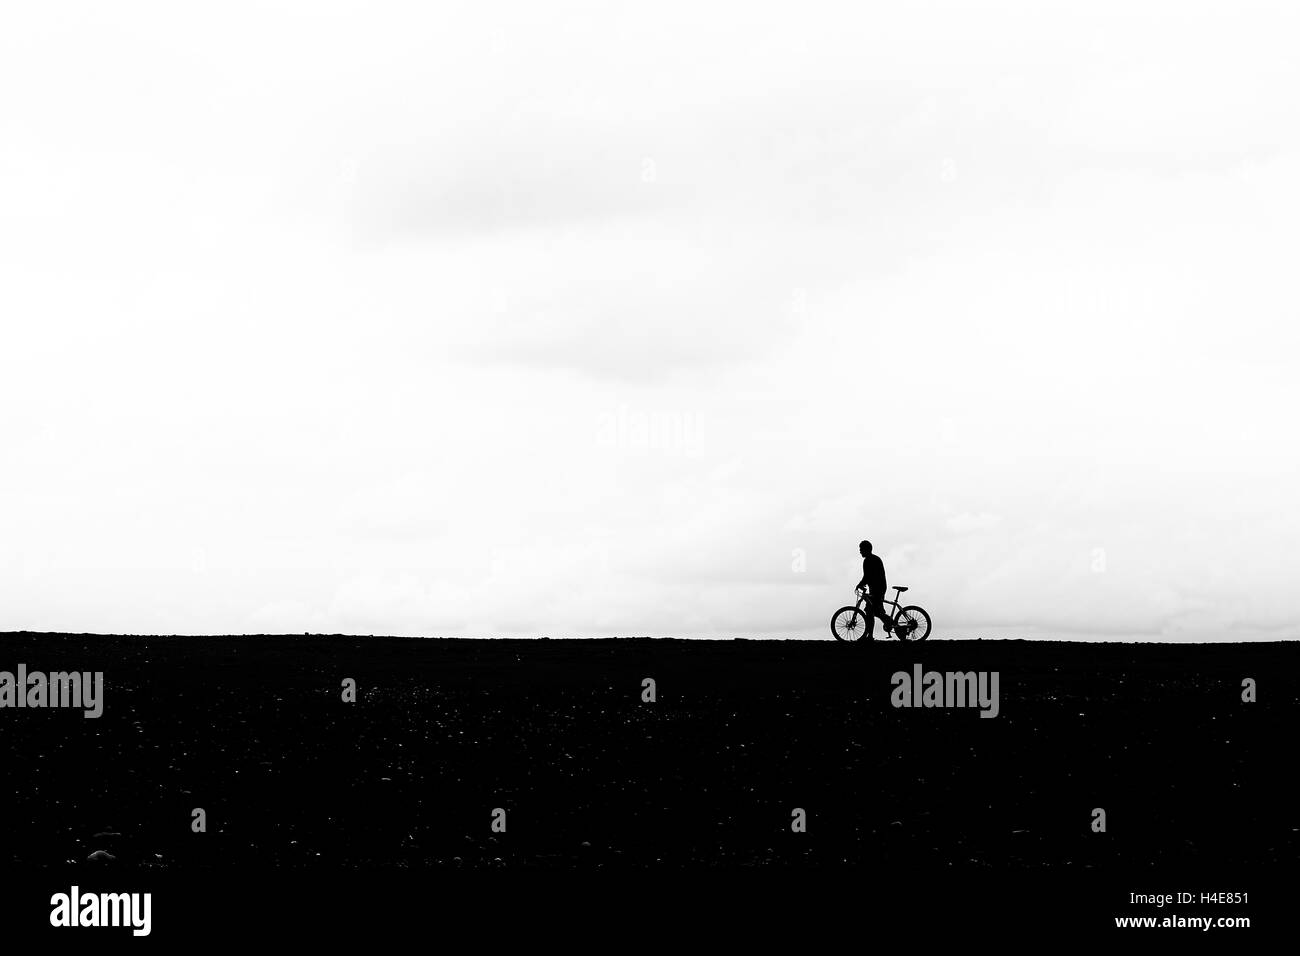 Cyclist. - Stock Image